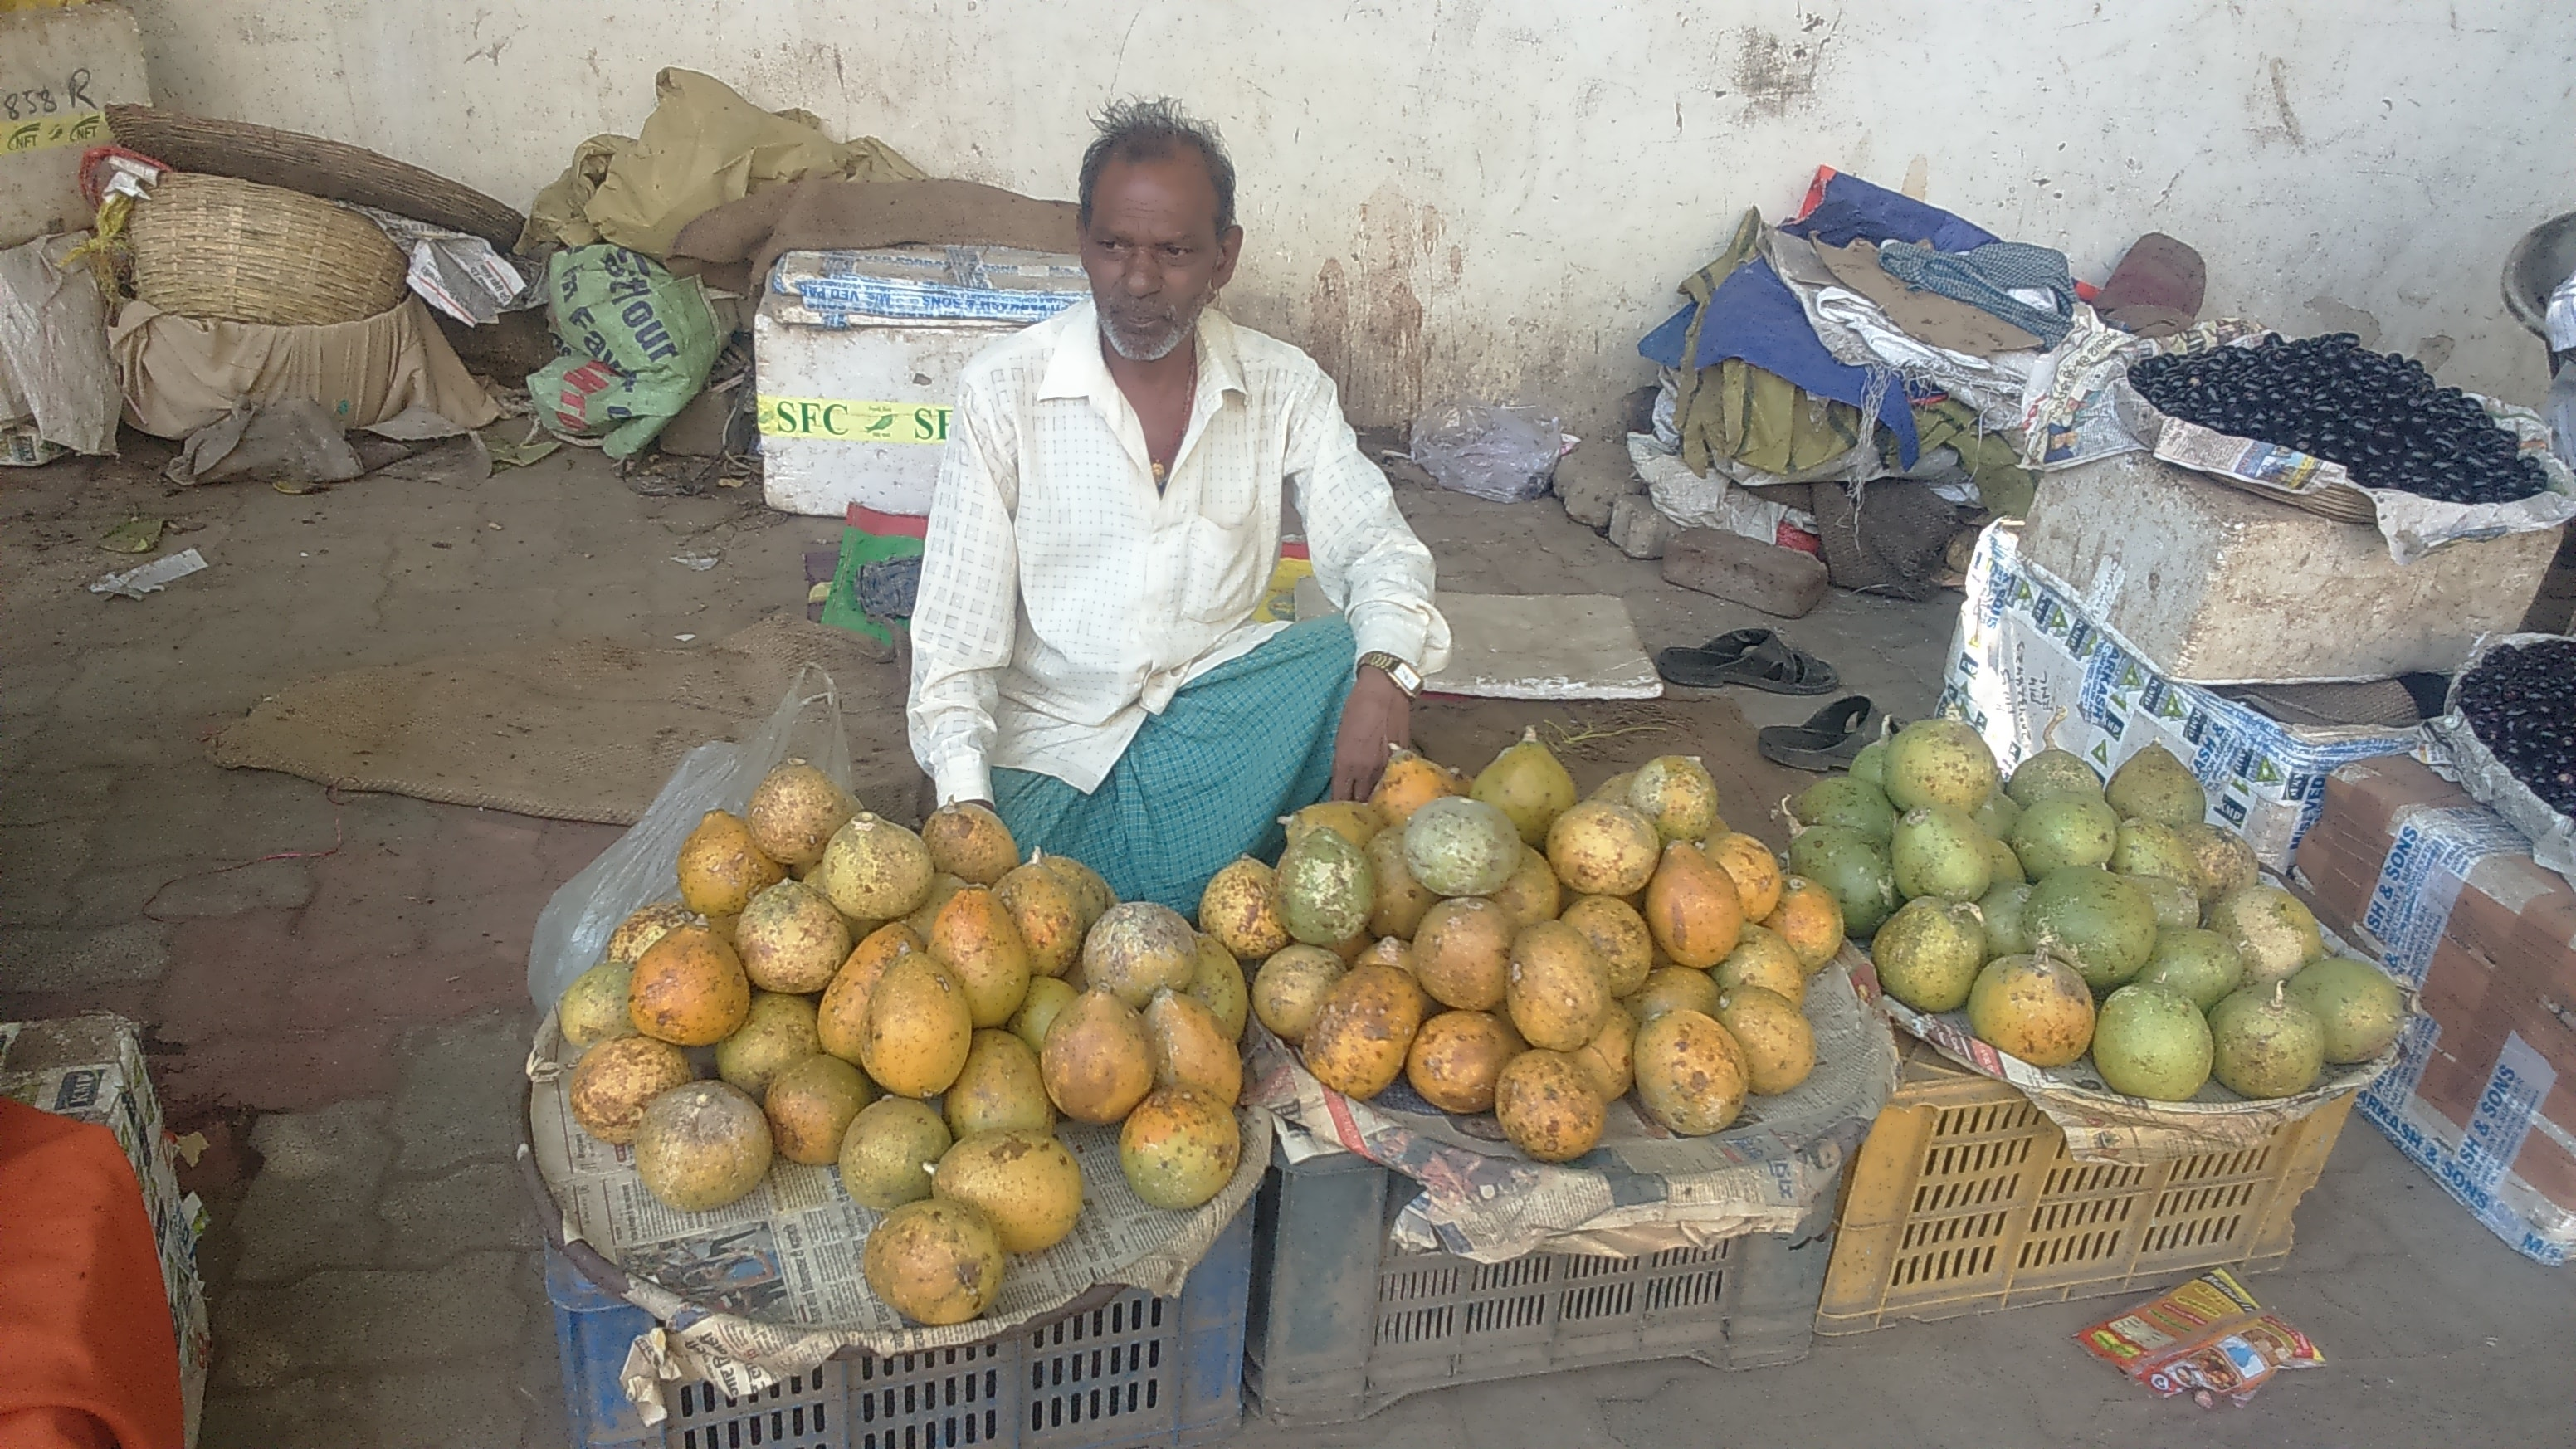 <p>Selling now is Bael,Aegle Marmelos,or golden apple,stone apple.It is a species of tree native to Jharkhand,Bihar,West Bengal and Bangladesh,is considered to be sacred by Hindus.Its…